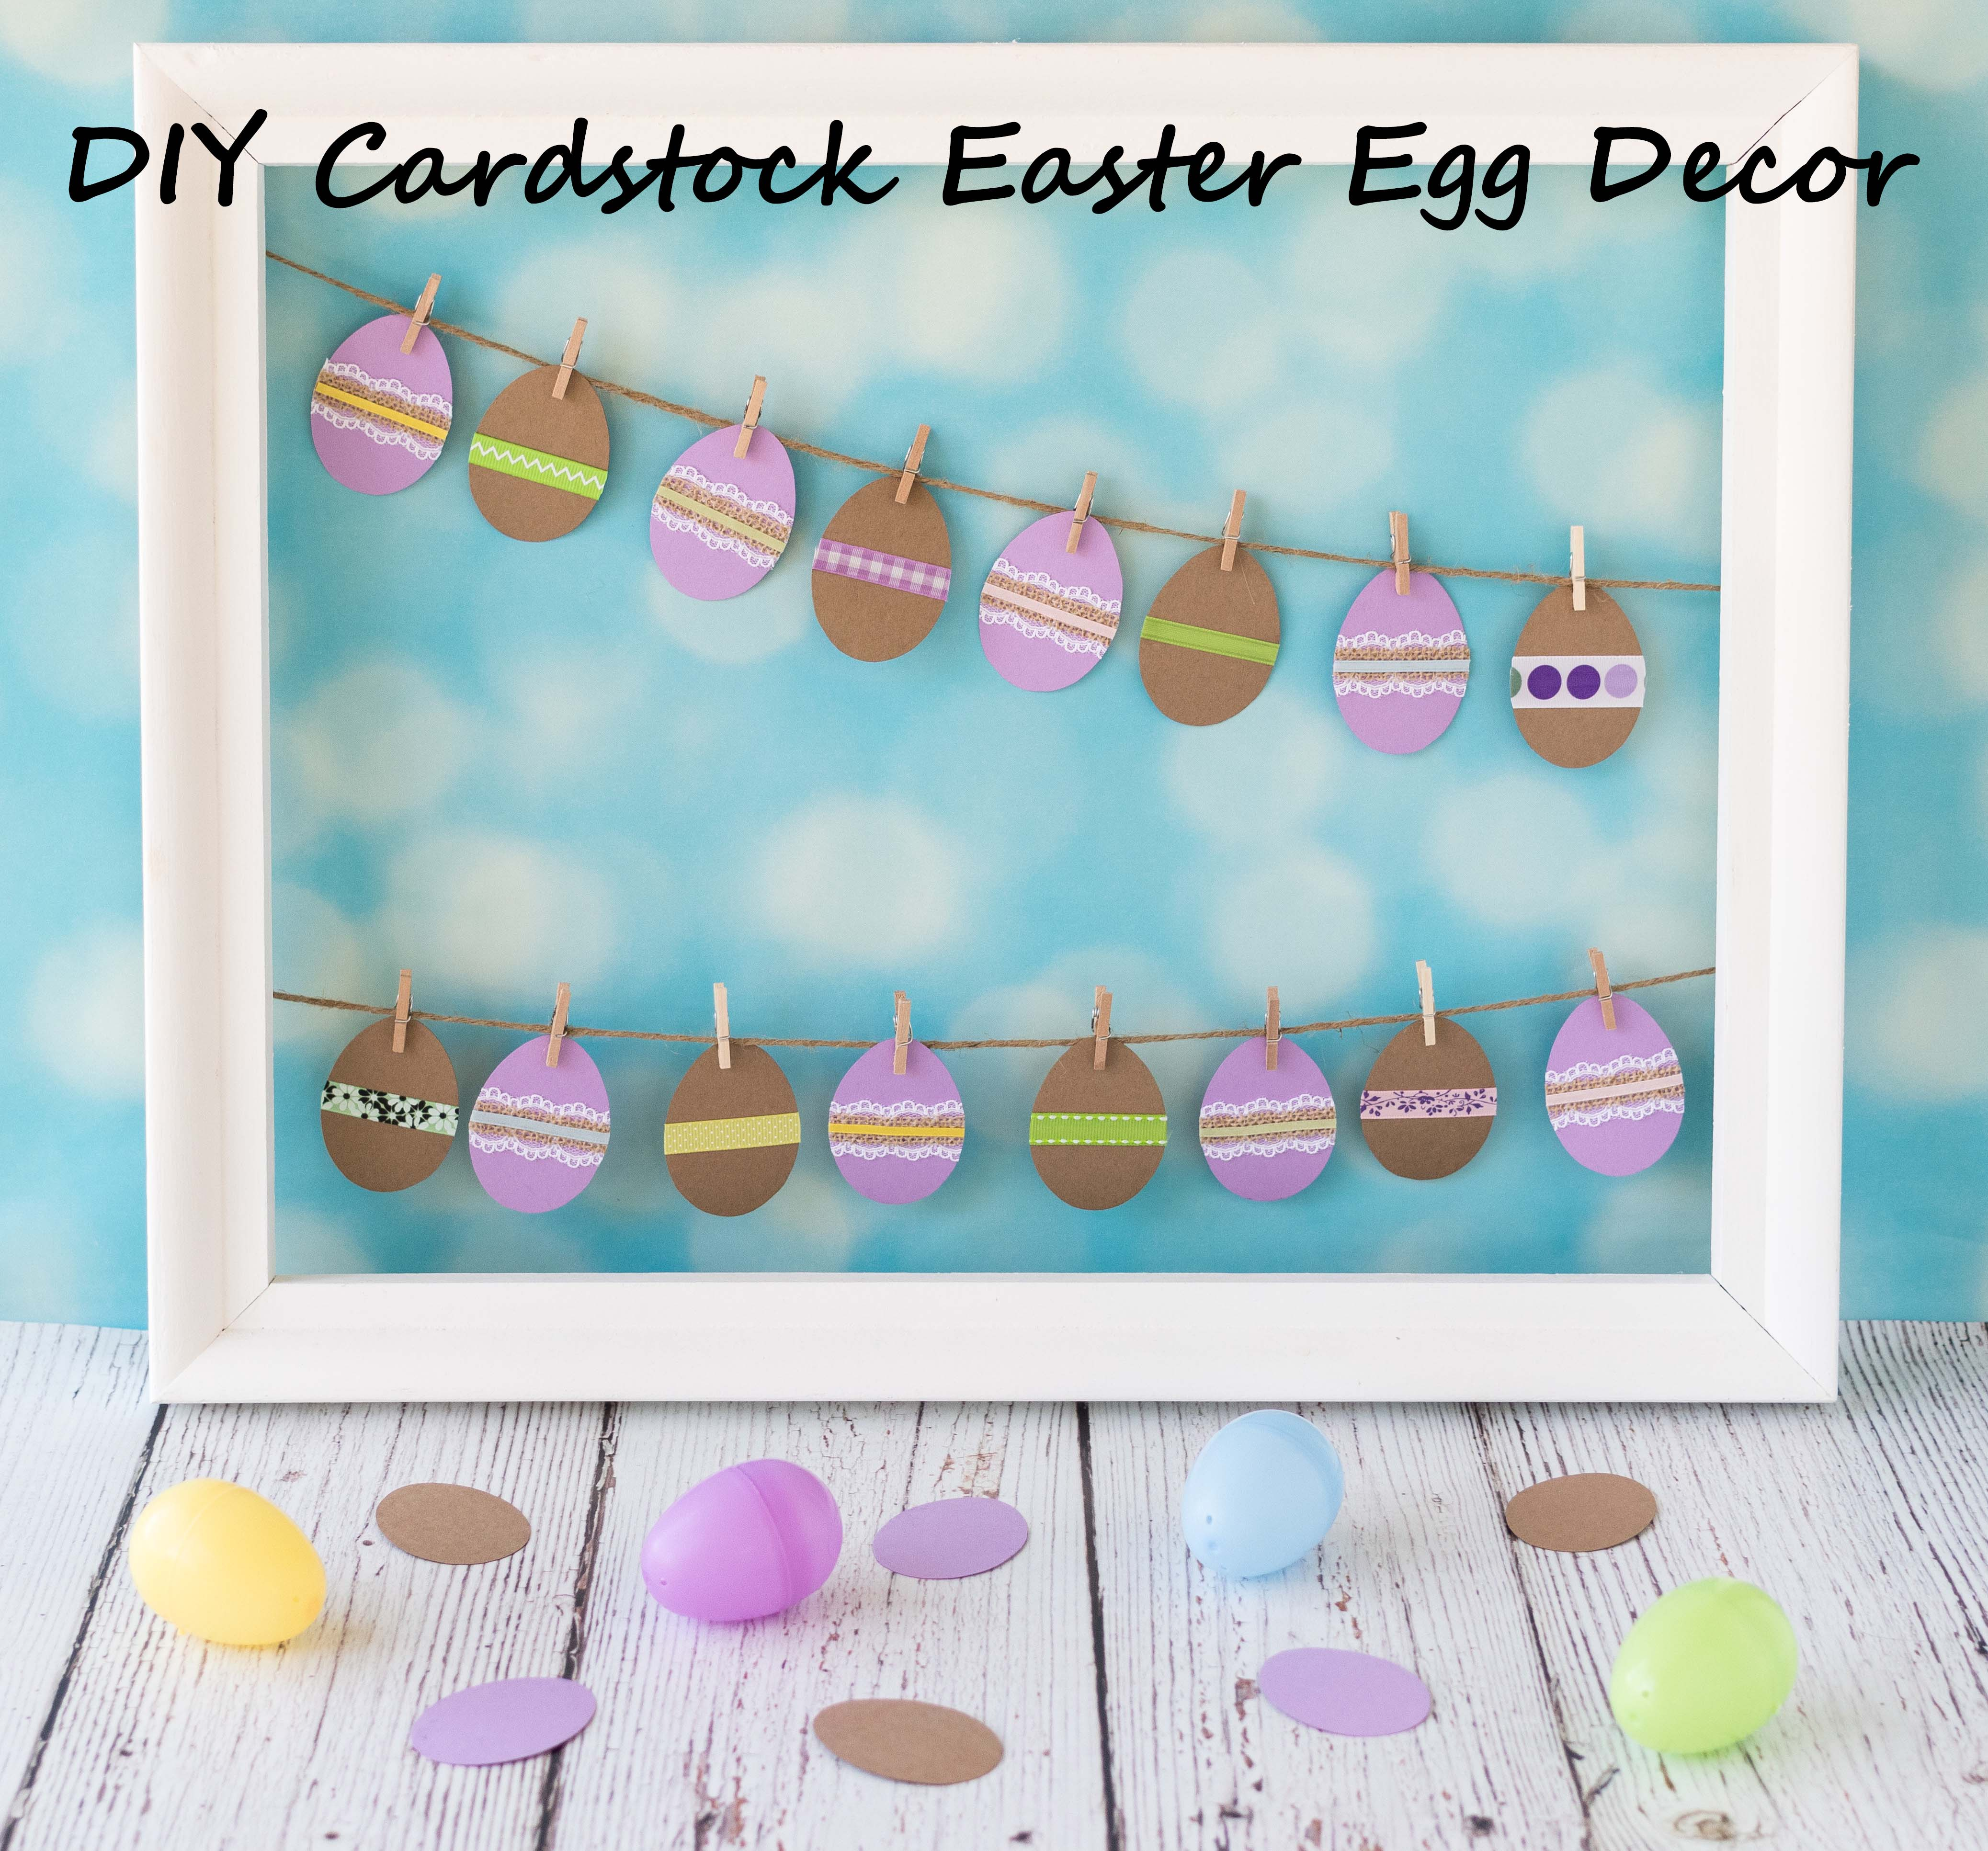 DIY Cardstock Easter Egg Decor | https://www.roseclearfield.com